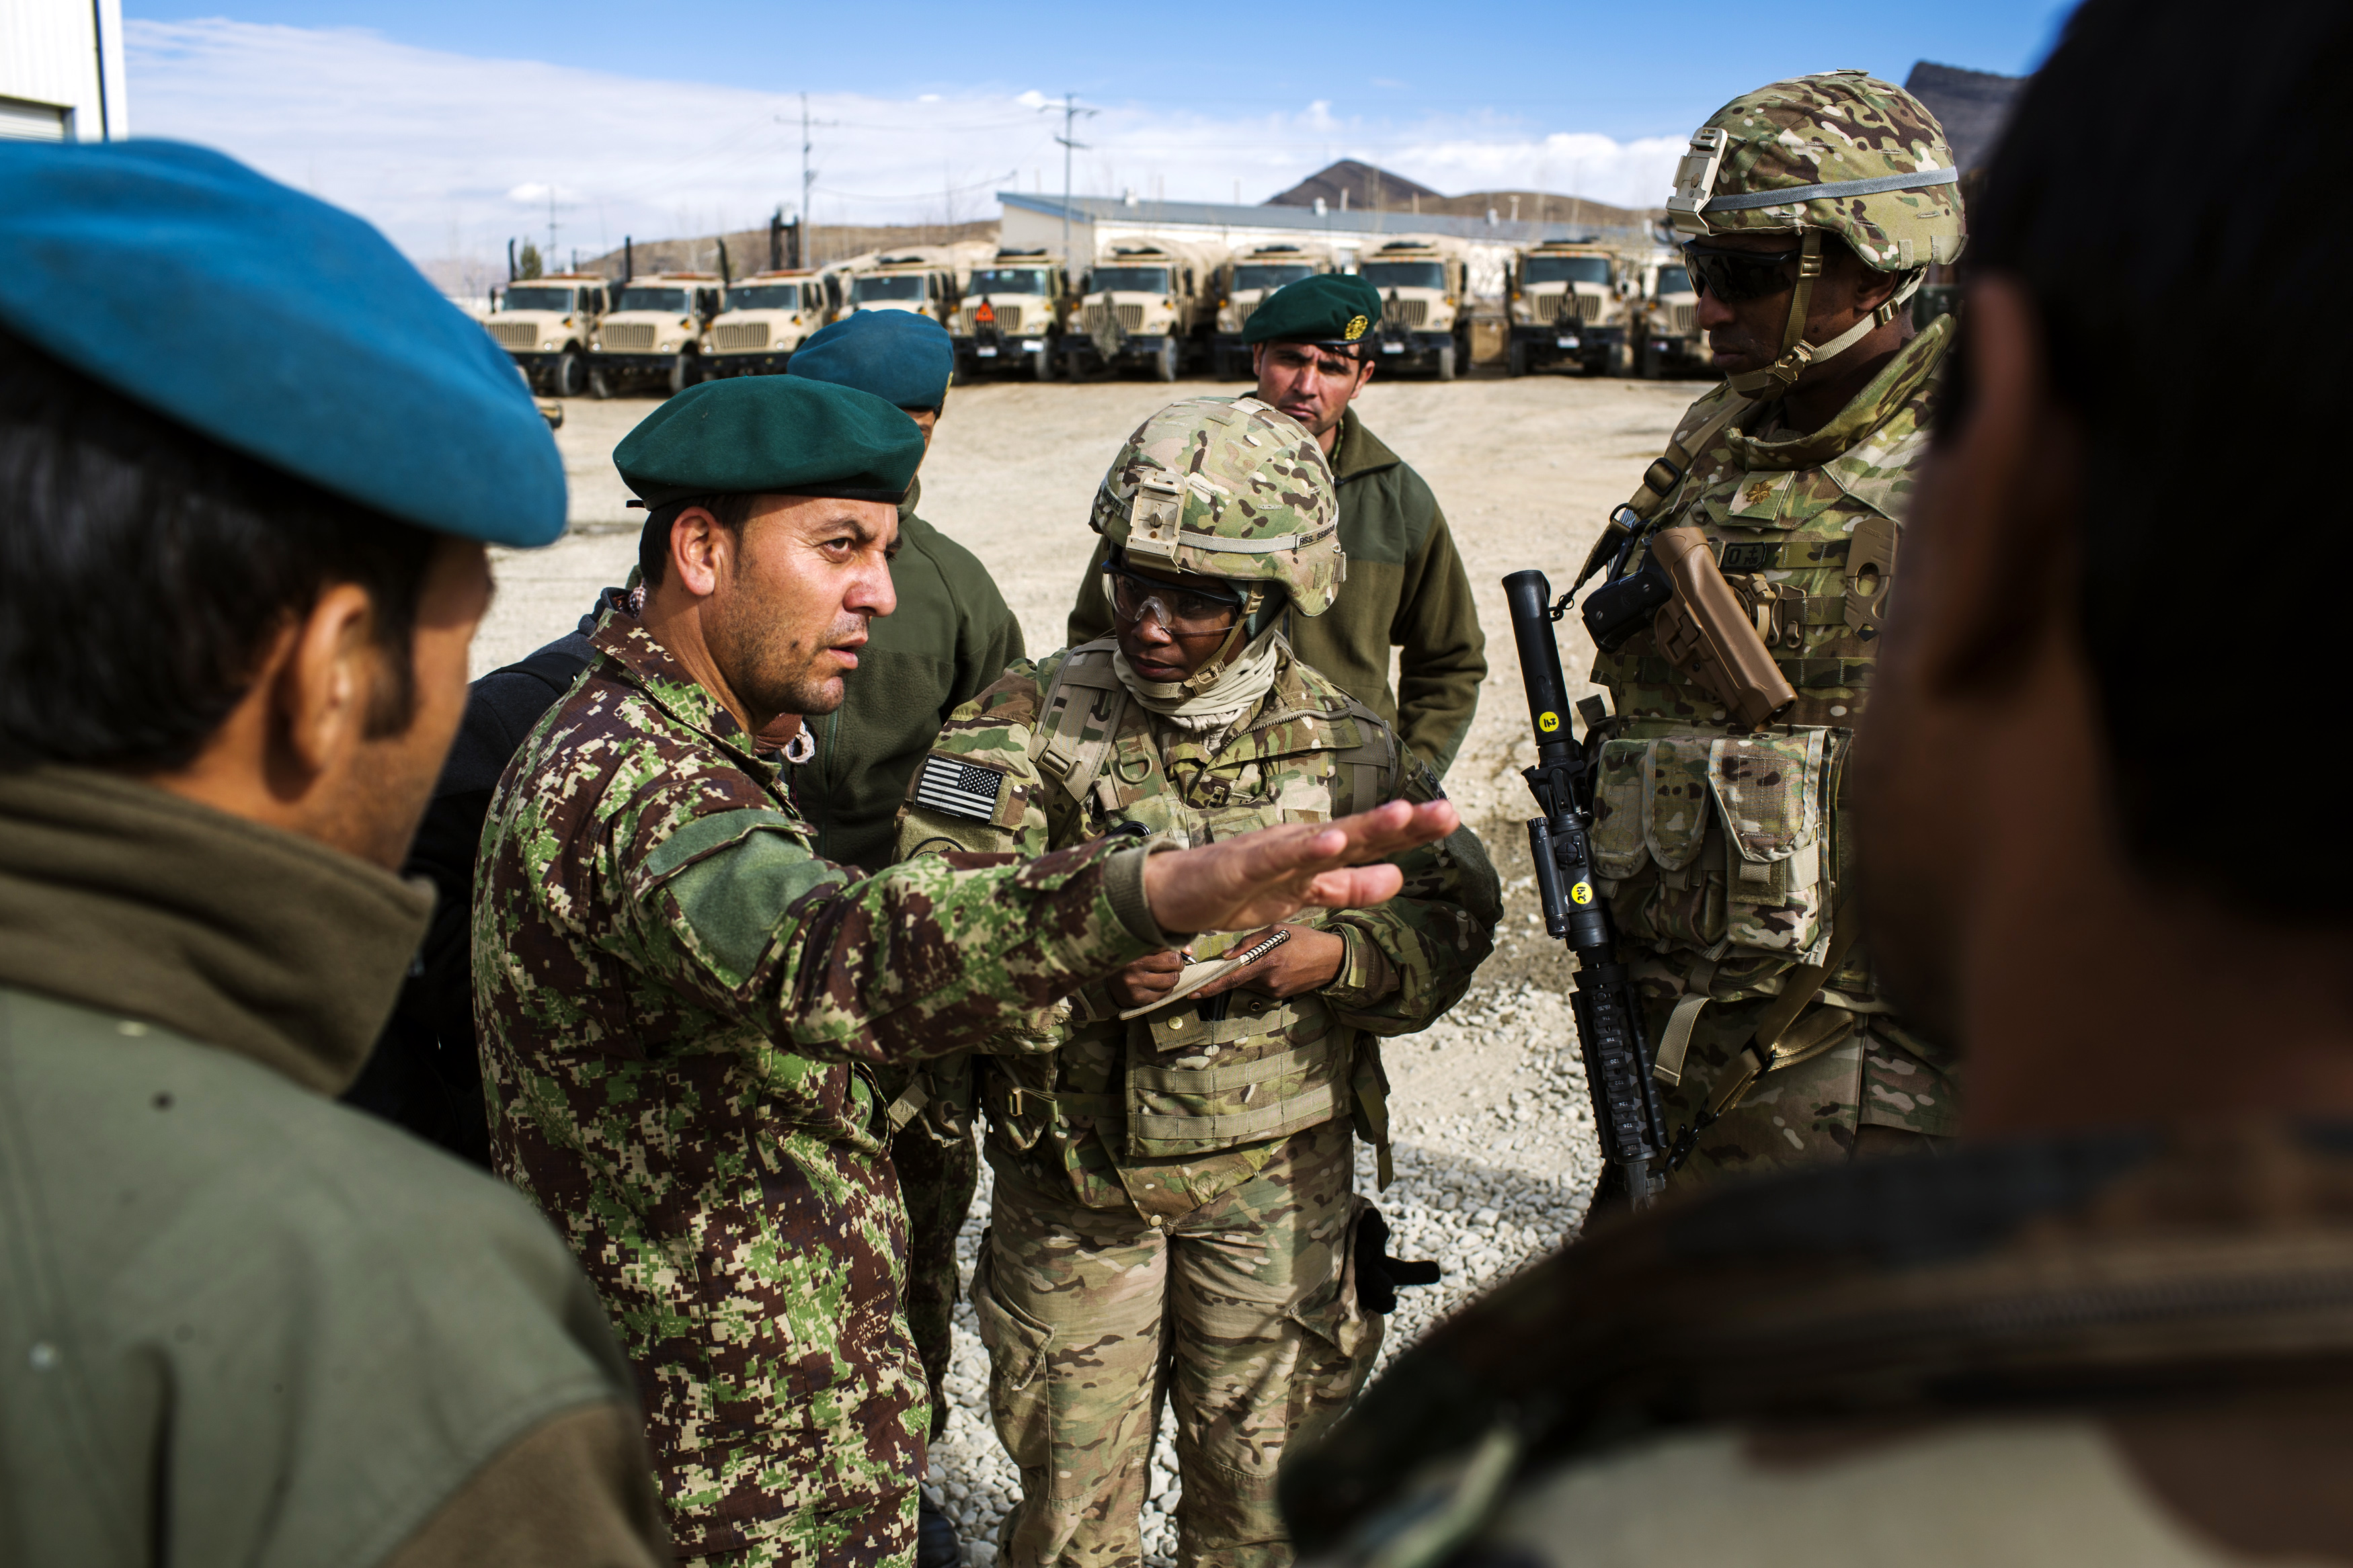 Is Our Mission In Afghanistan Worth >> Forging An Enduring Partnership With Afghanistan